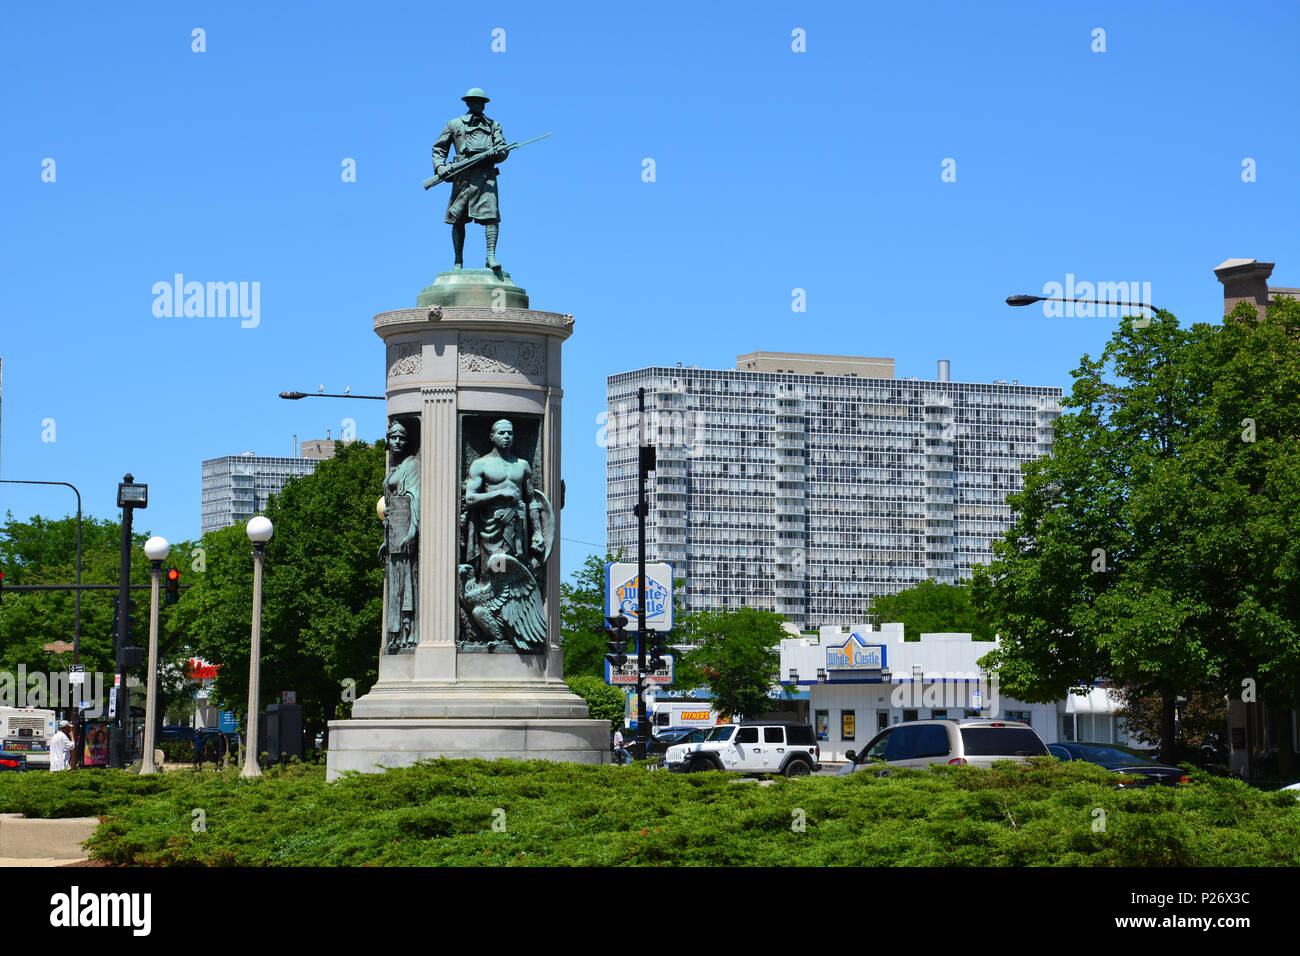 The Victory Monument in Chicago's Bronzeville neighborhood honors the African American Illinois 8th Regiment soldiers who fought under French in WWI - Stock Image